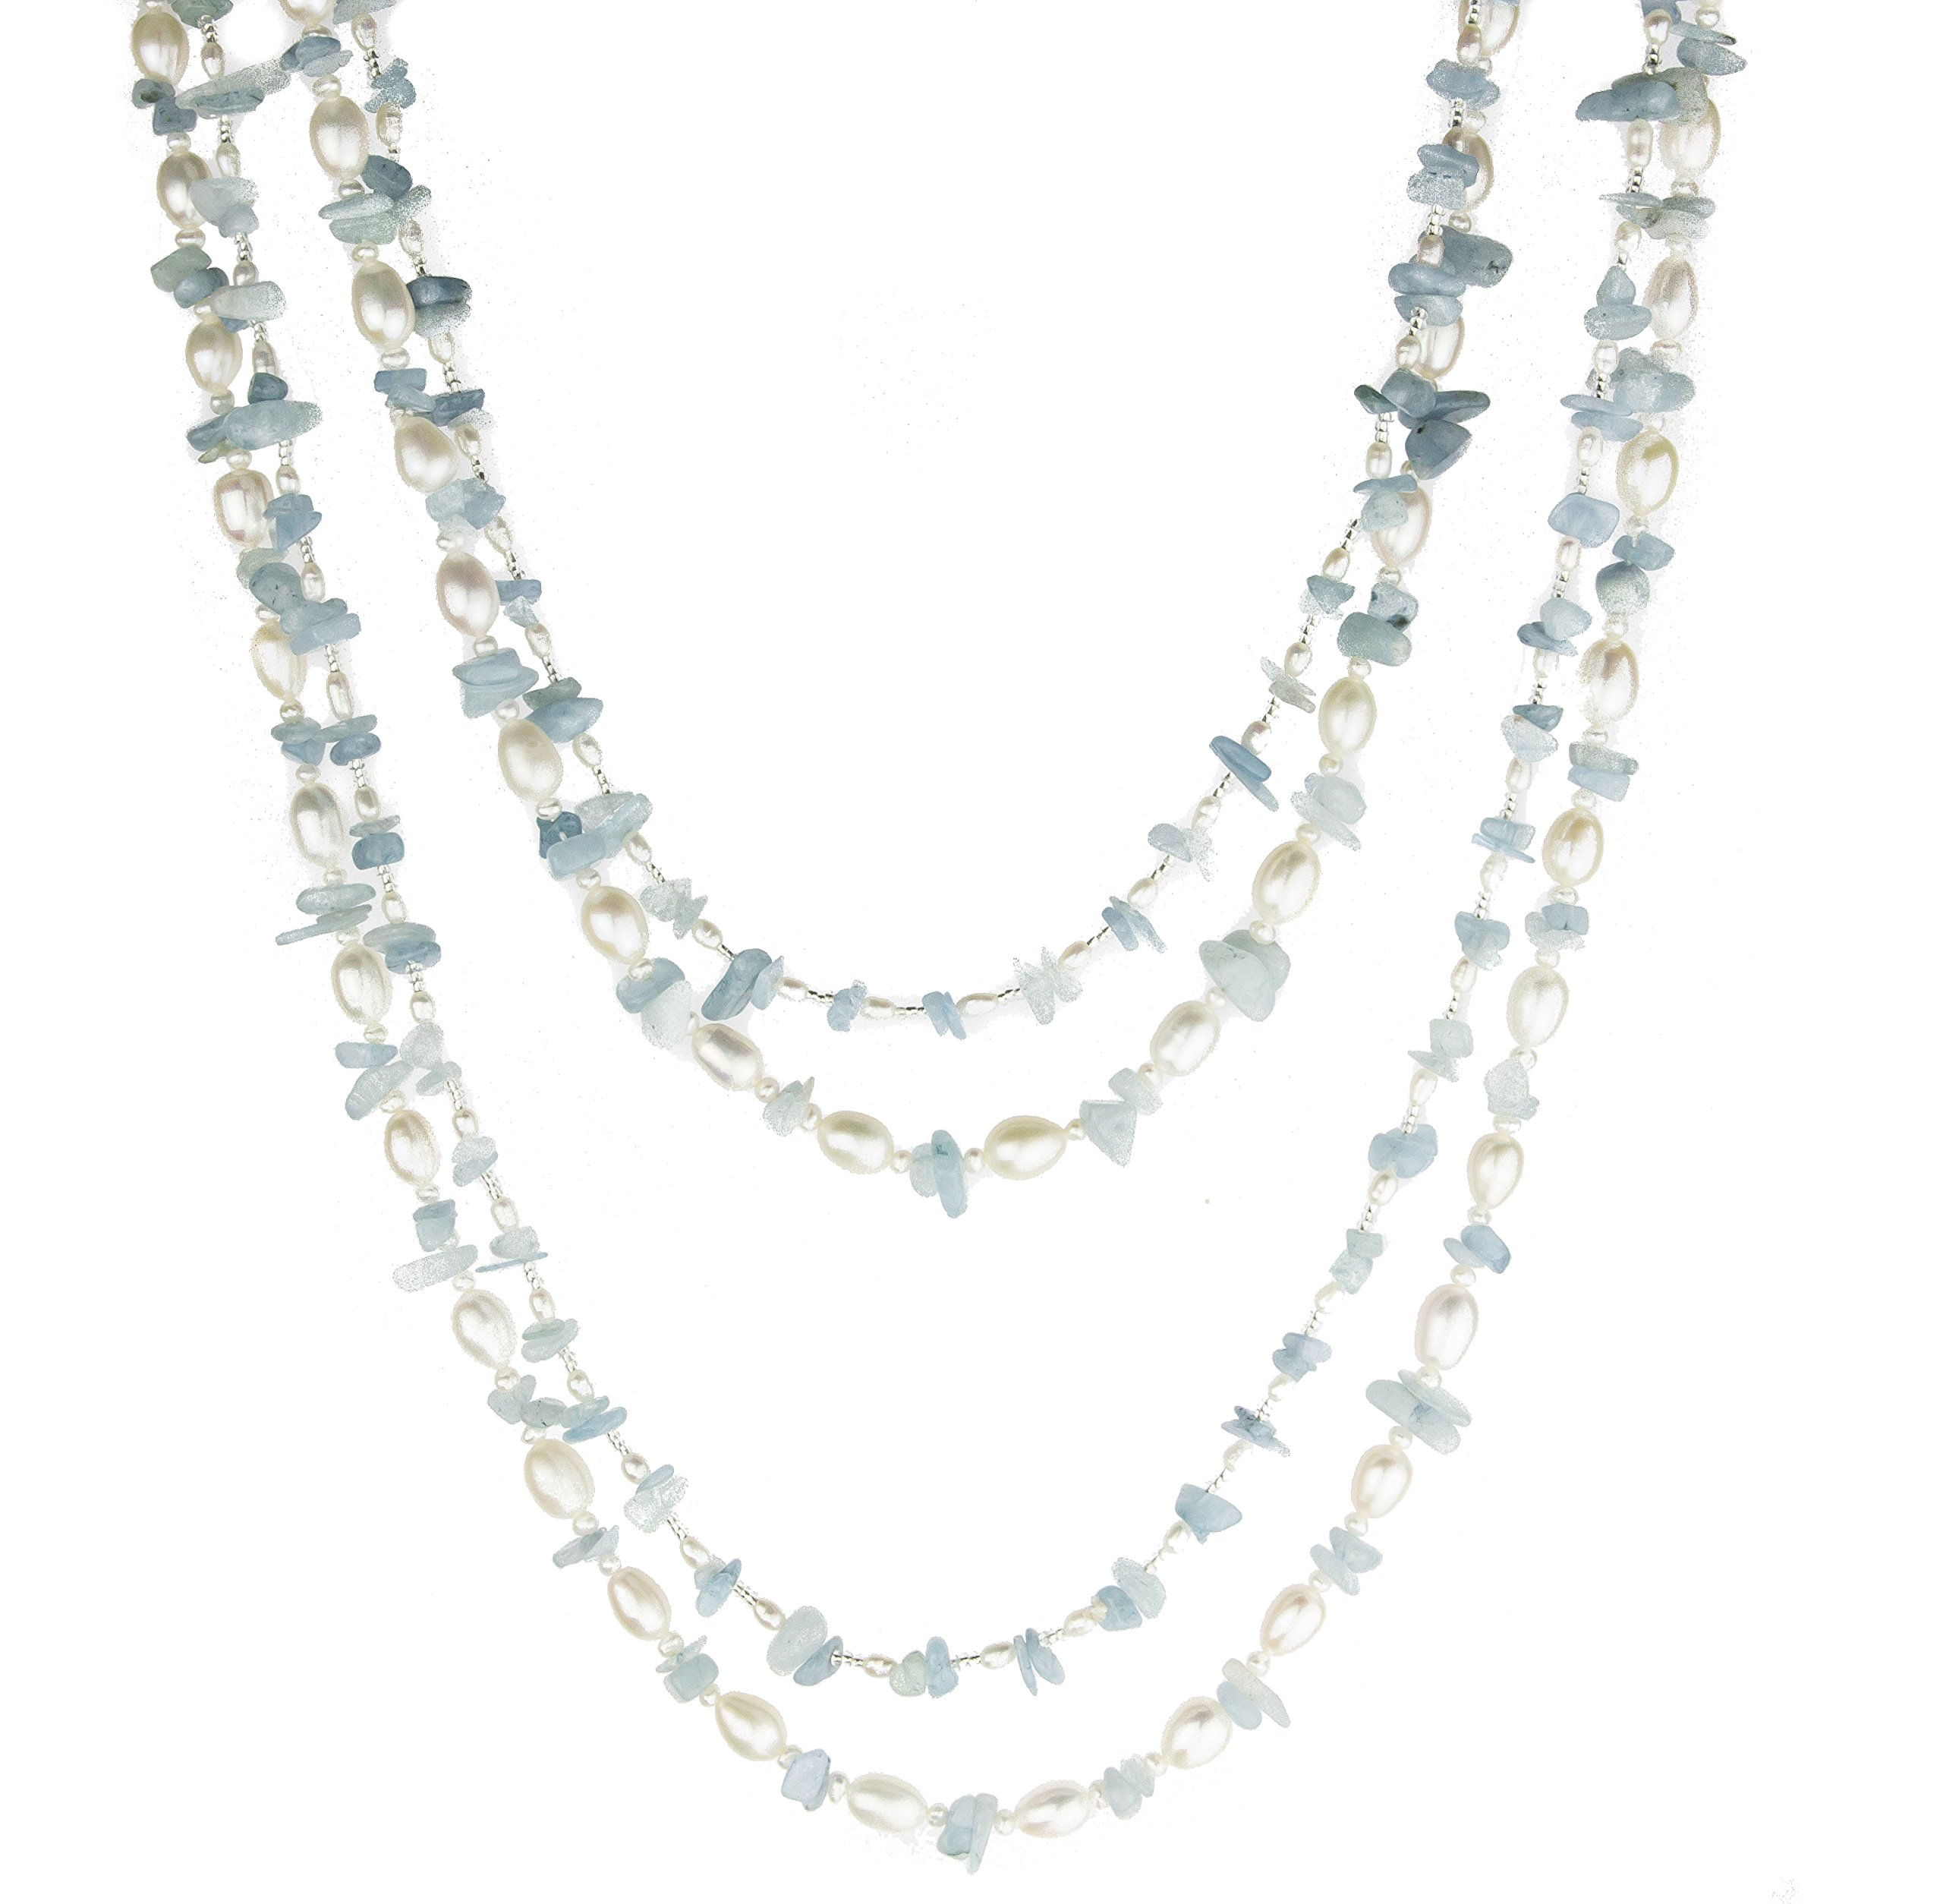 HinsonGayle 'Sky' 2-Strand Freshwater Cultured Pearl & Aquamarine Necklace & Dangle Earrings-40 in length